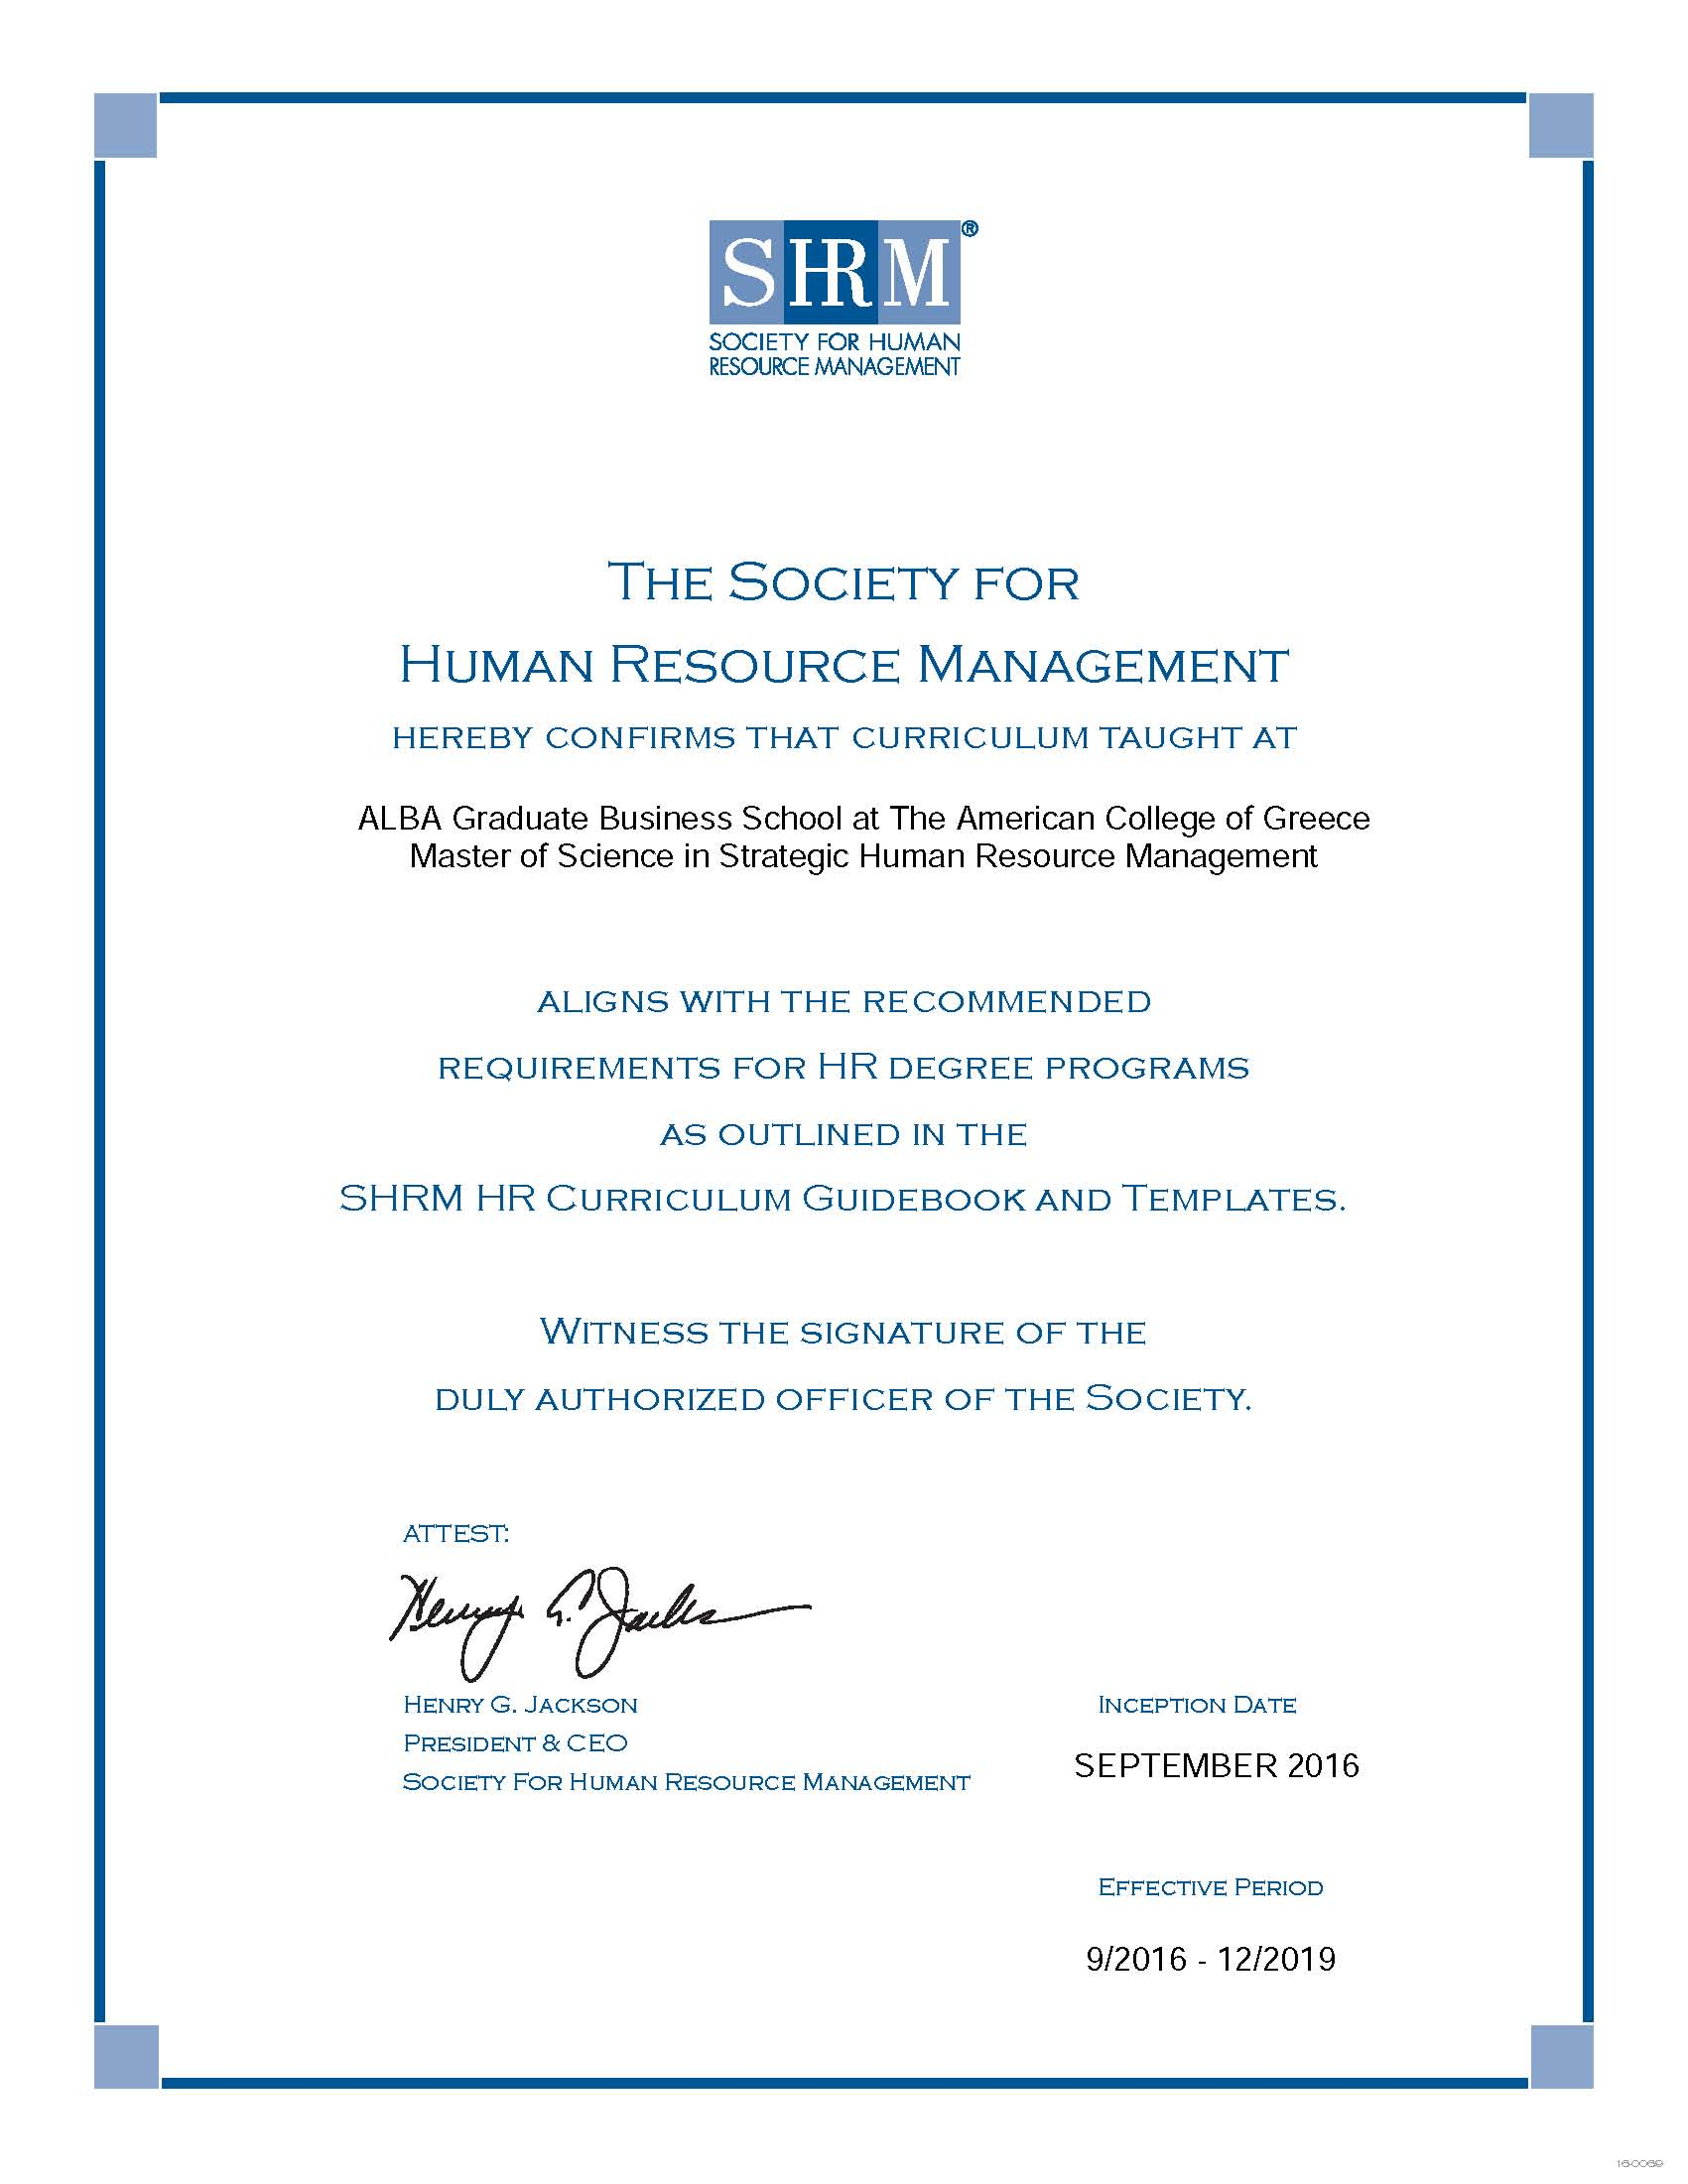 High Praise For The Msc In Strategic Human Resource Management